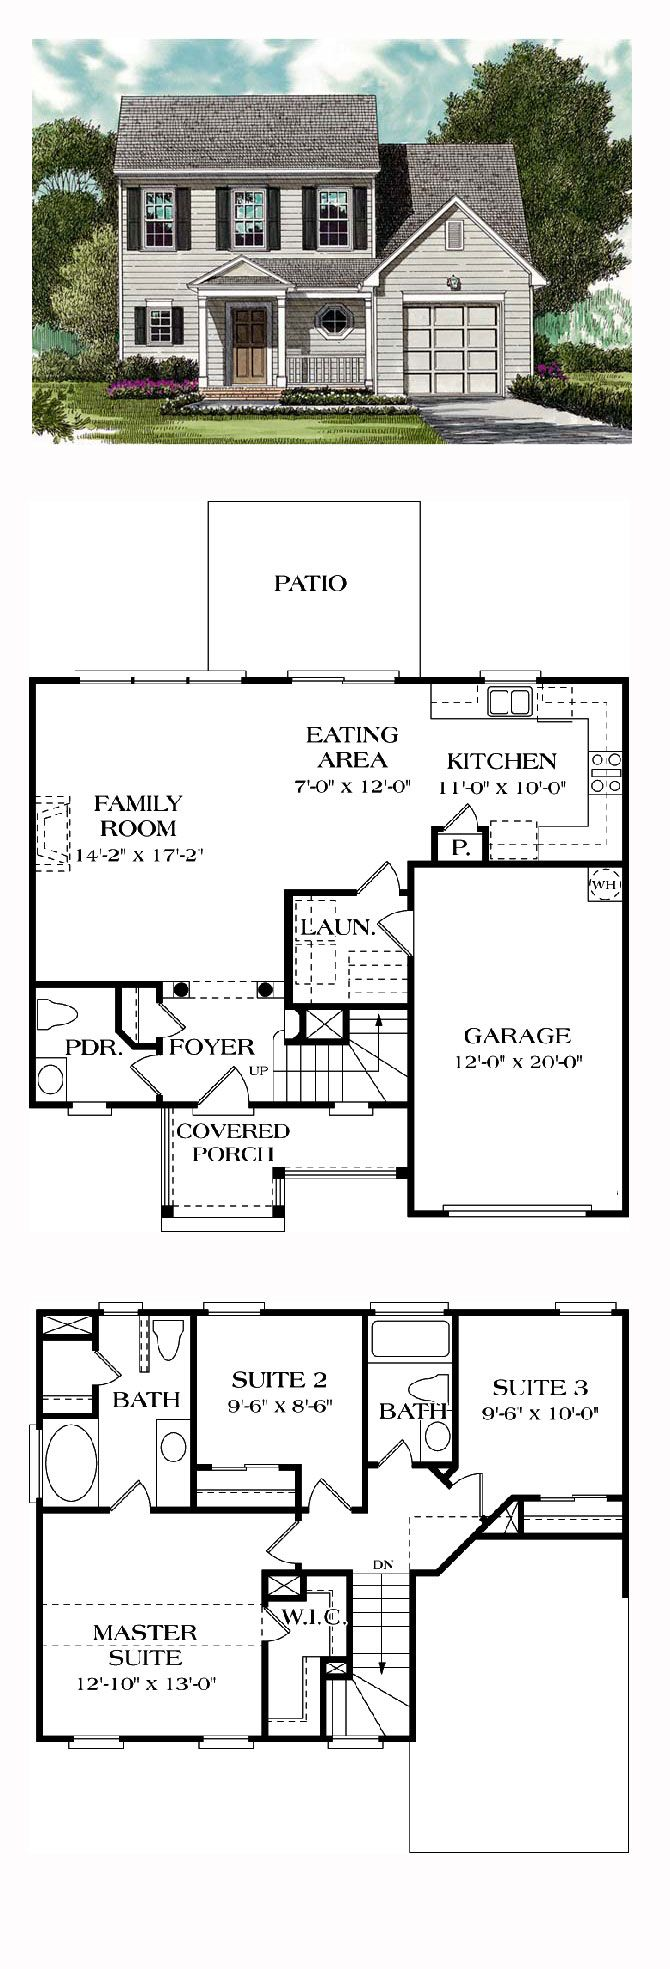 Colonial House Plan 96921 | Total Living Area: 1354 sq. ft., 3 bedrooms and 2.5 bathrooms. #colonialhome